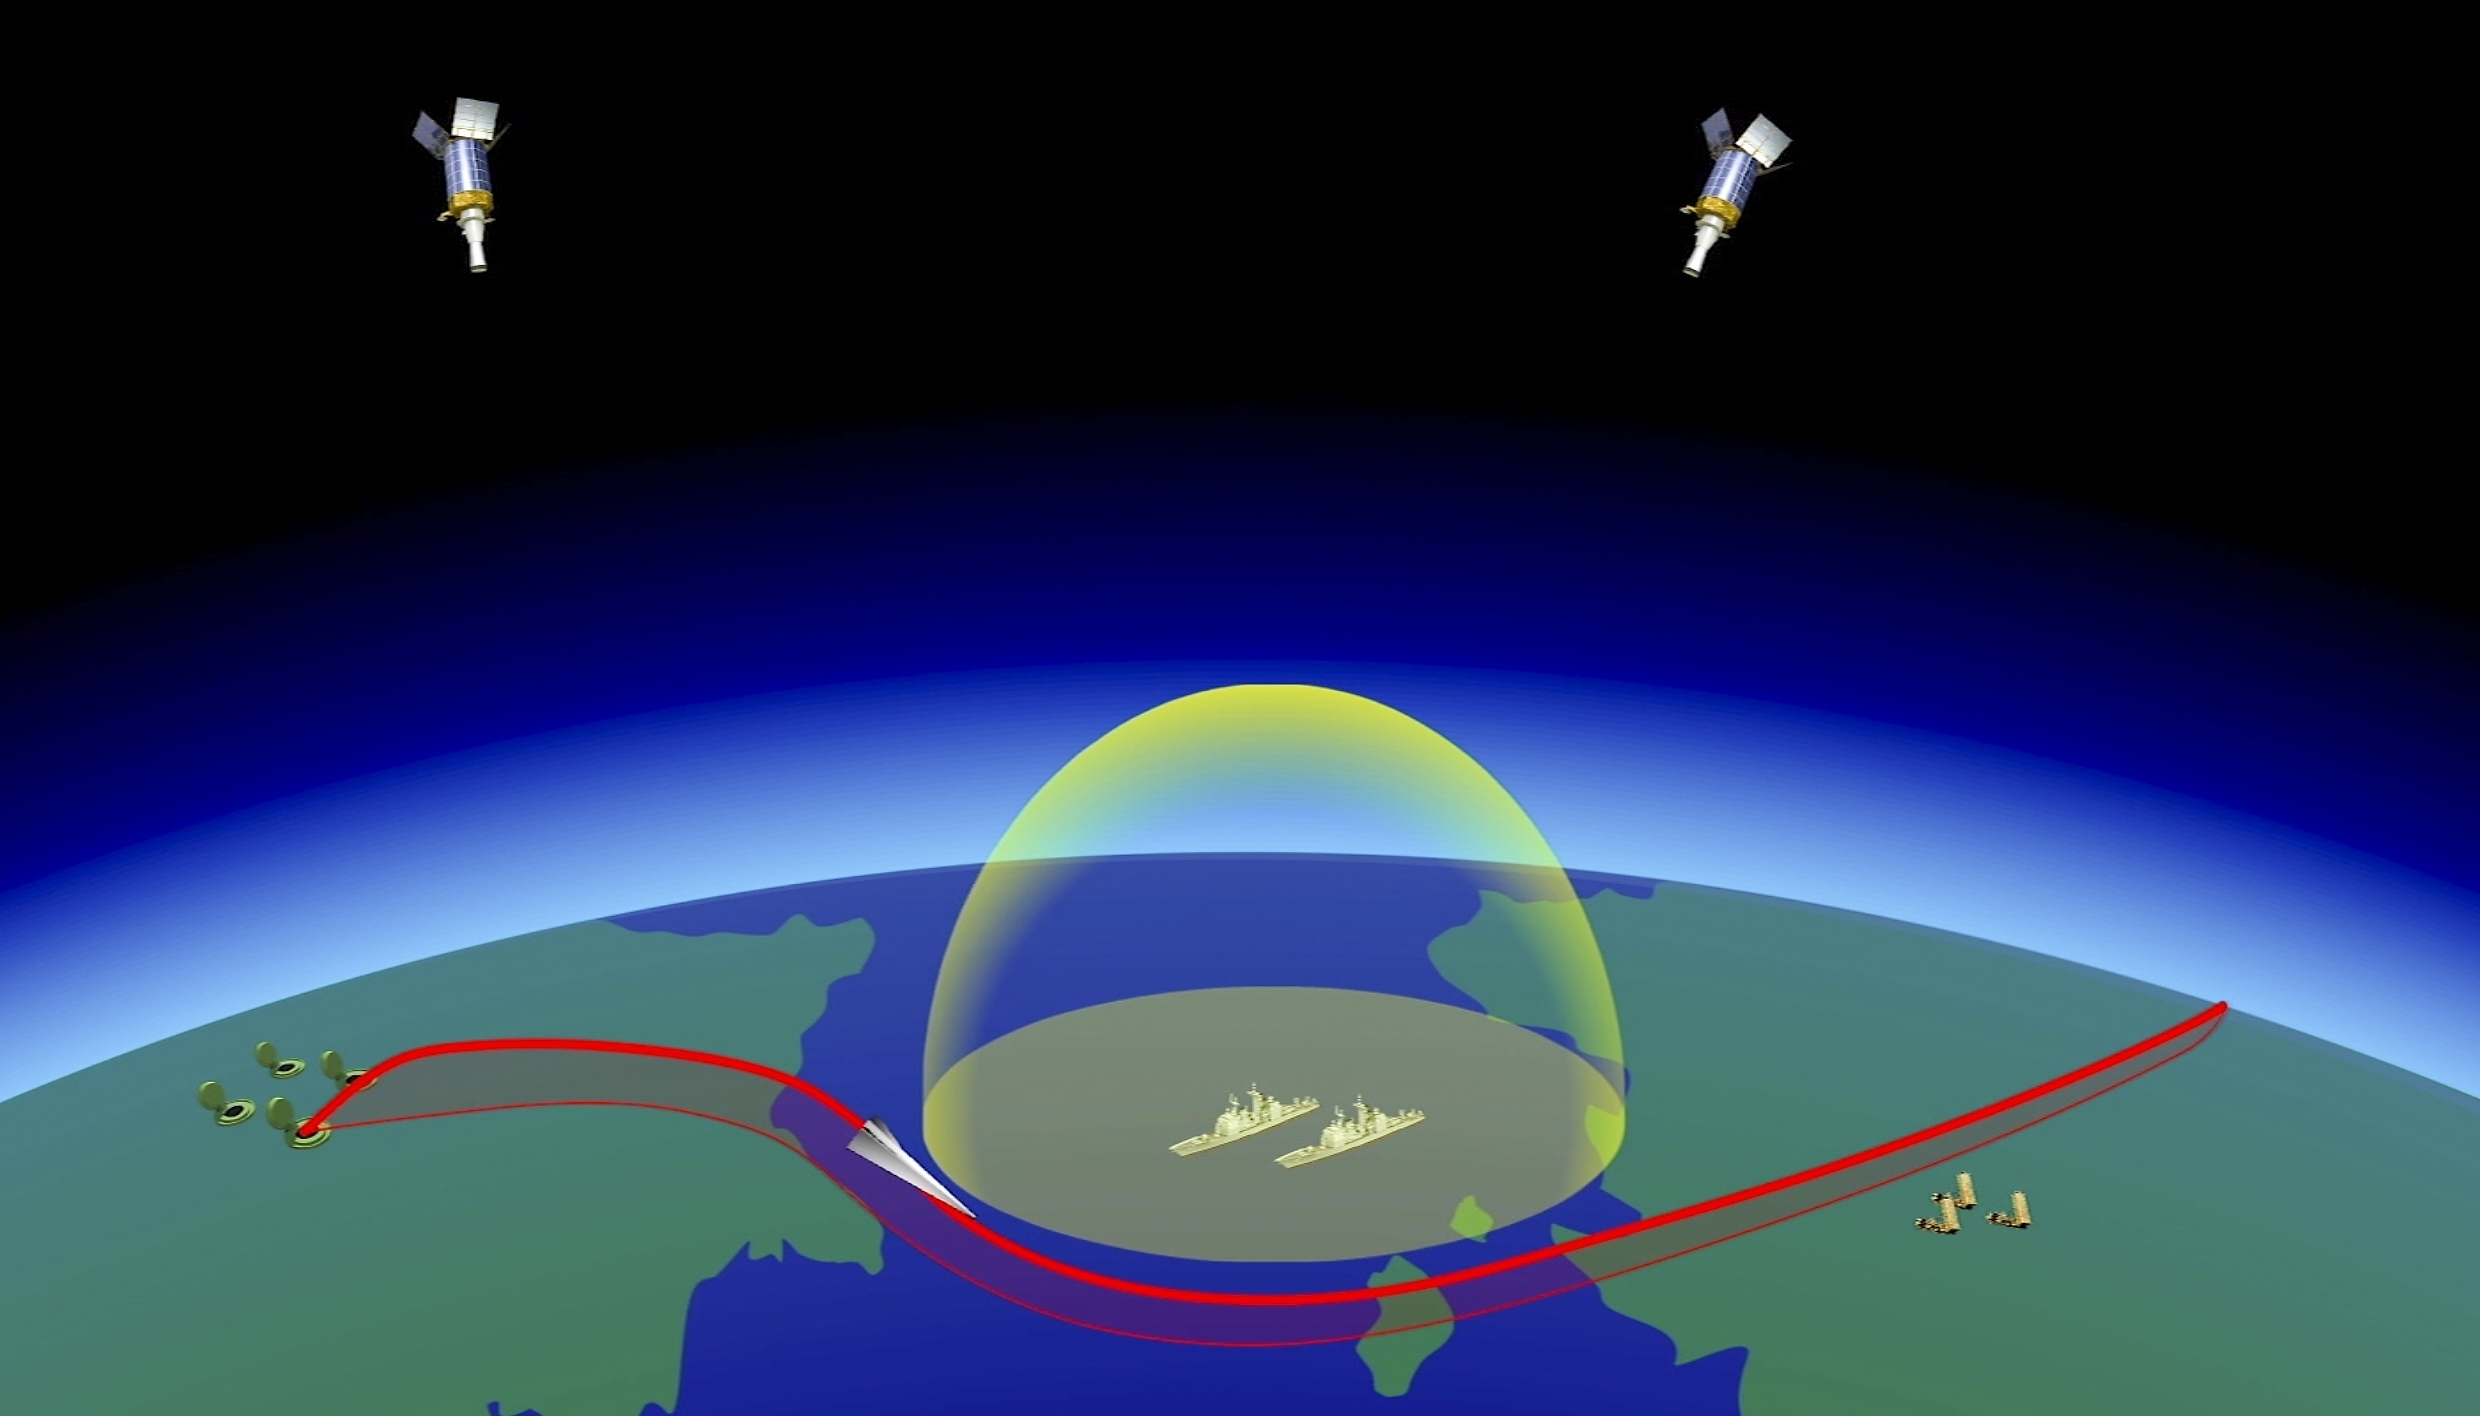 A computer simulation shows the Avangard hypersonic vehicle maneuvering to bypass missile defenses en route to target. (RU-RTR Russian Television via AP)